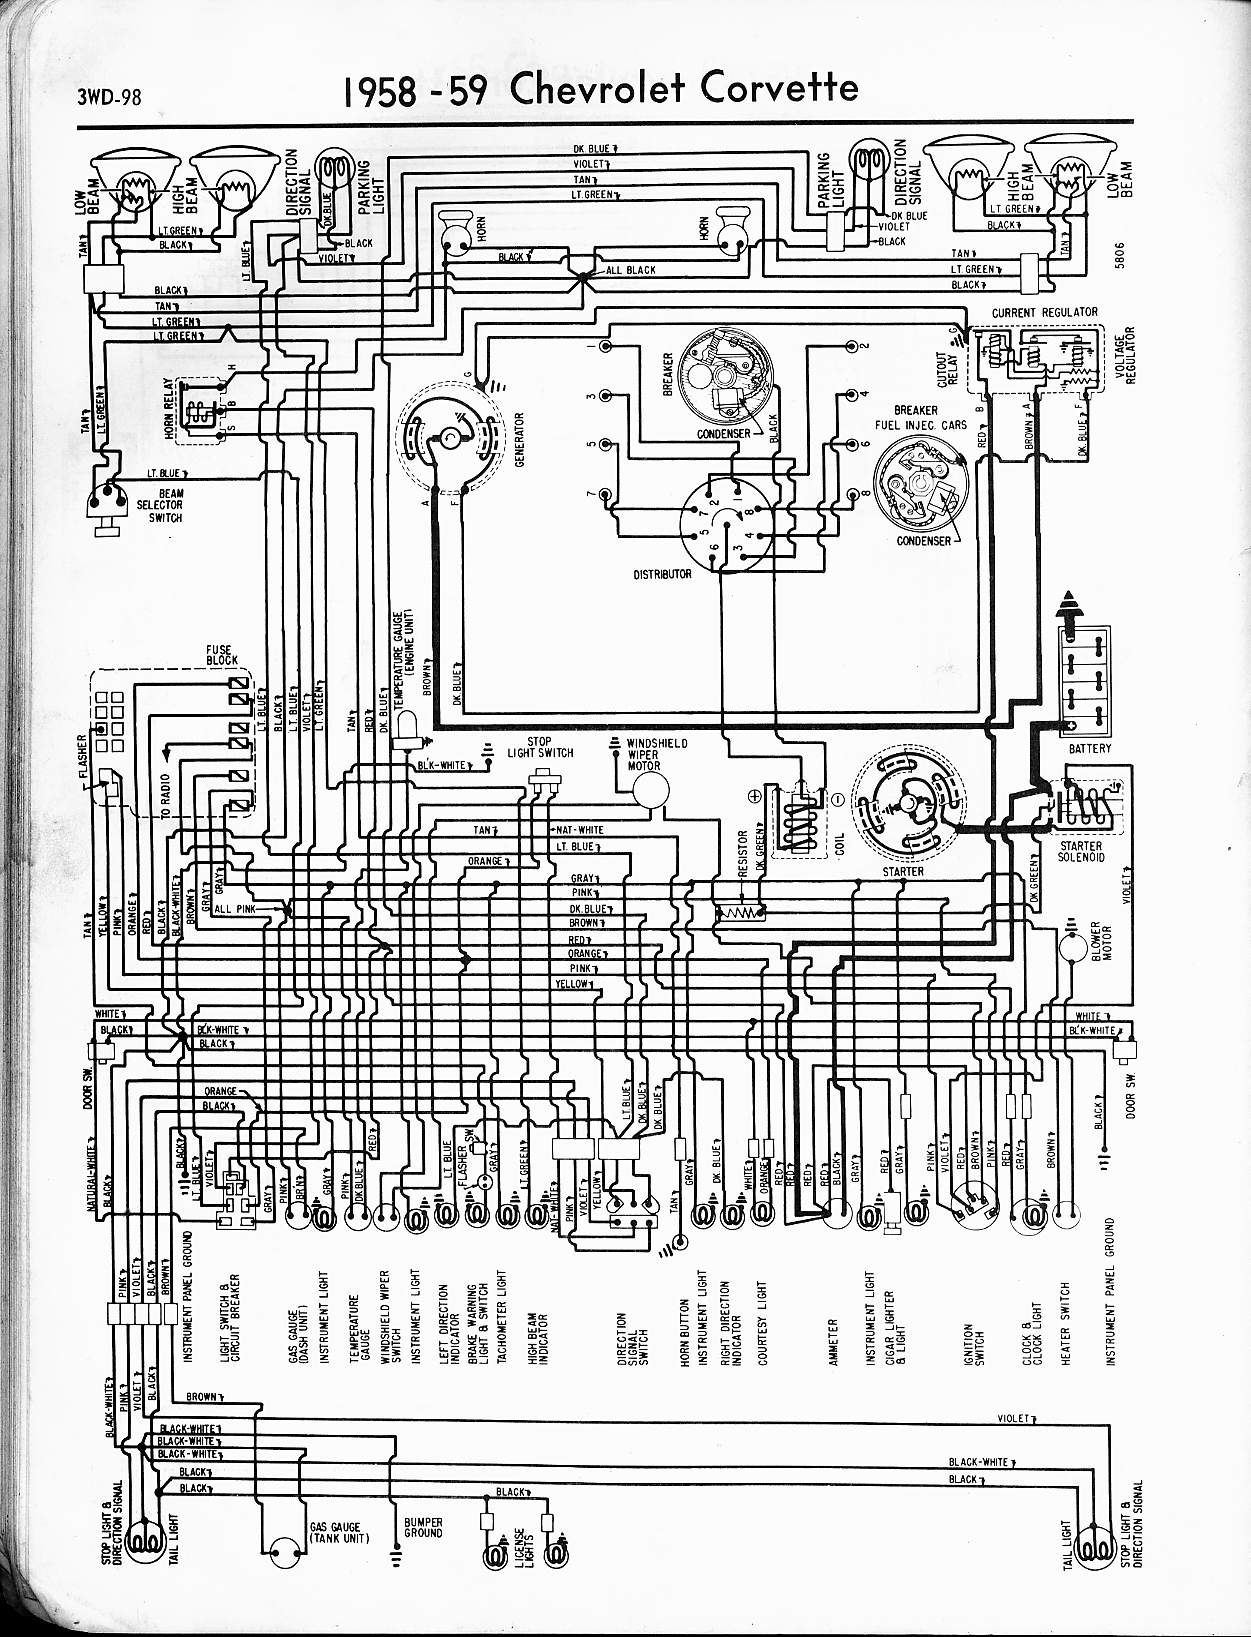 MWireChev58_3WD 098 57 65 chevy wiring diagrams 65 corvette wiring diagram at soozxer.org